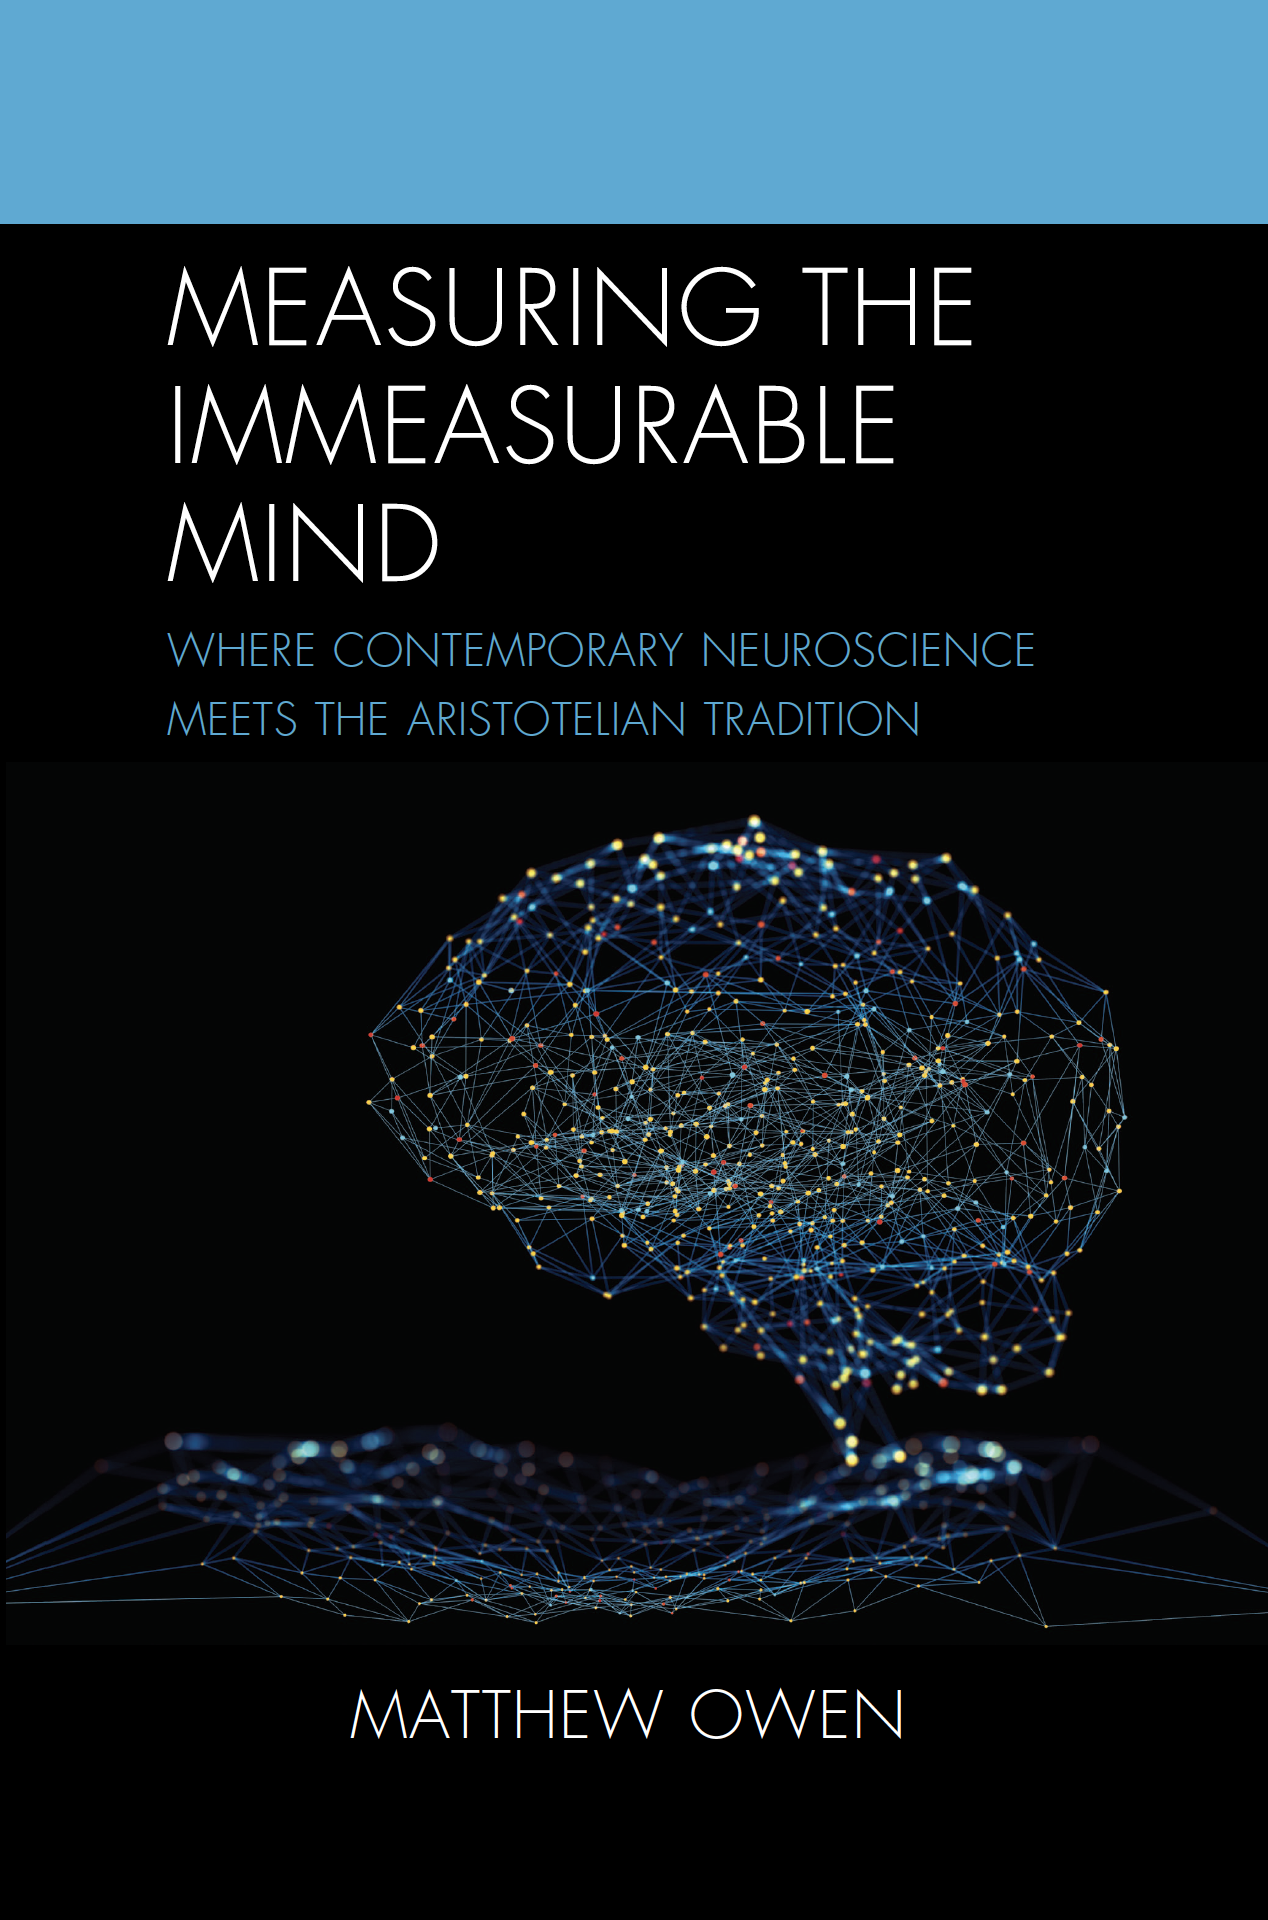 30% OFF book, Measuring the Immeasurable Mind: Where Contemporary Neuroscience Meets the Aristotelian Tradition